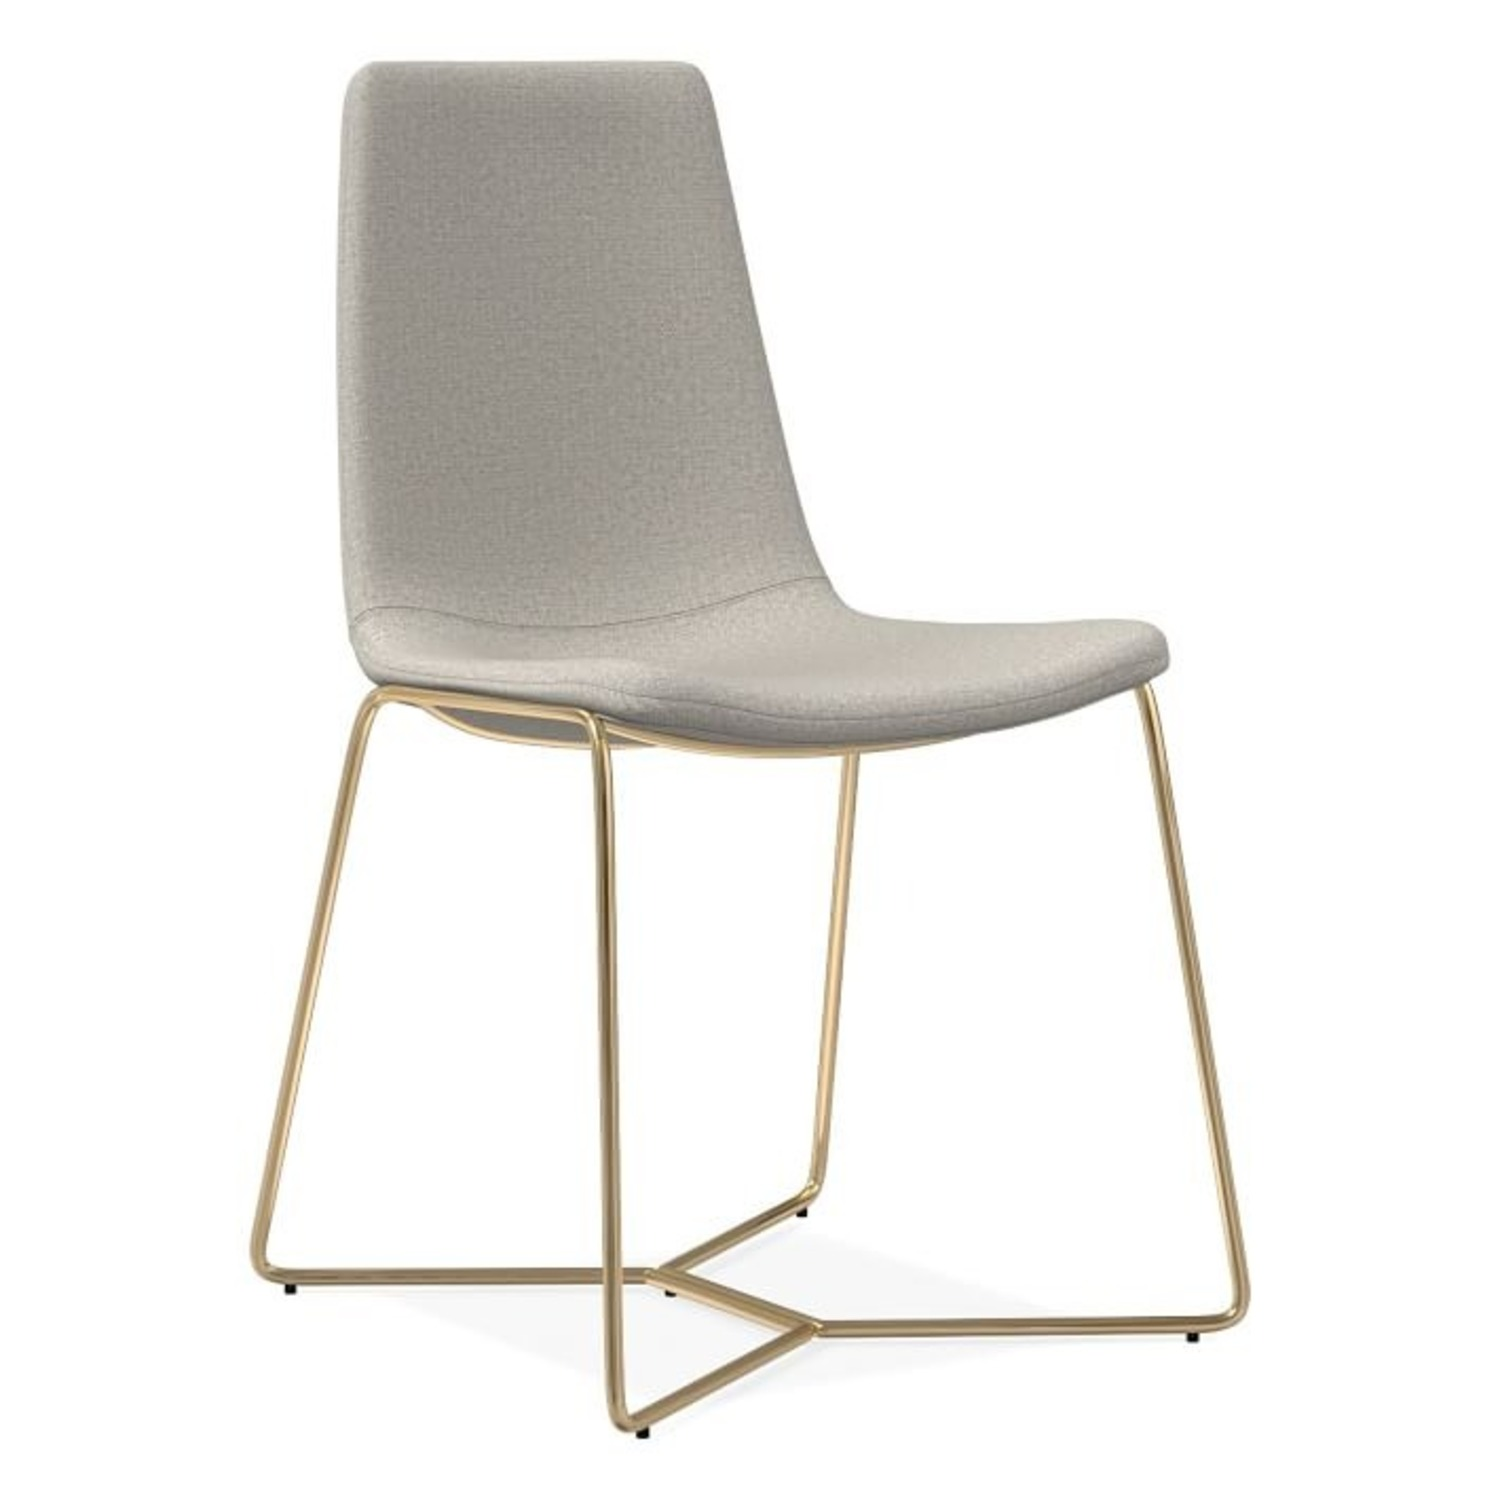 West Elm Slope Dining Chair - image-3